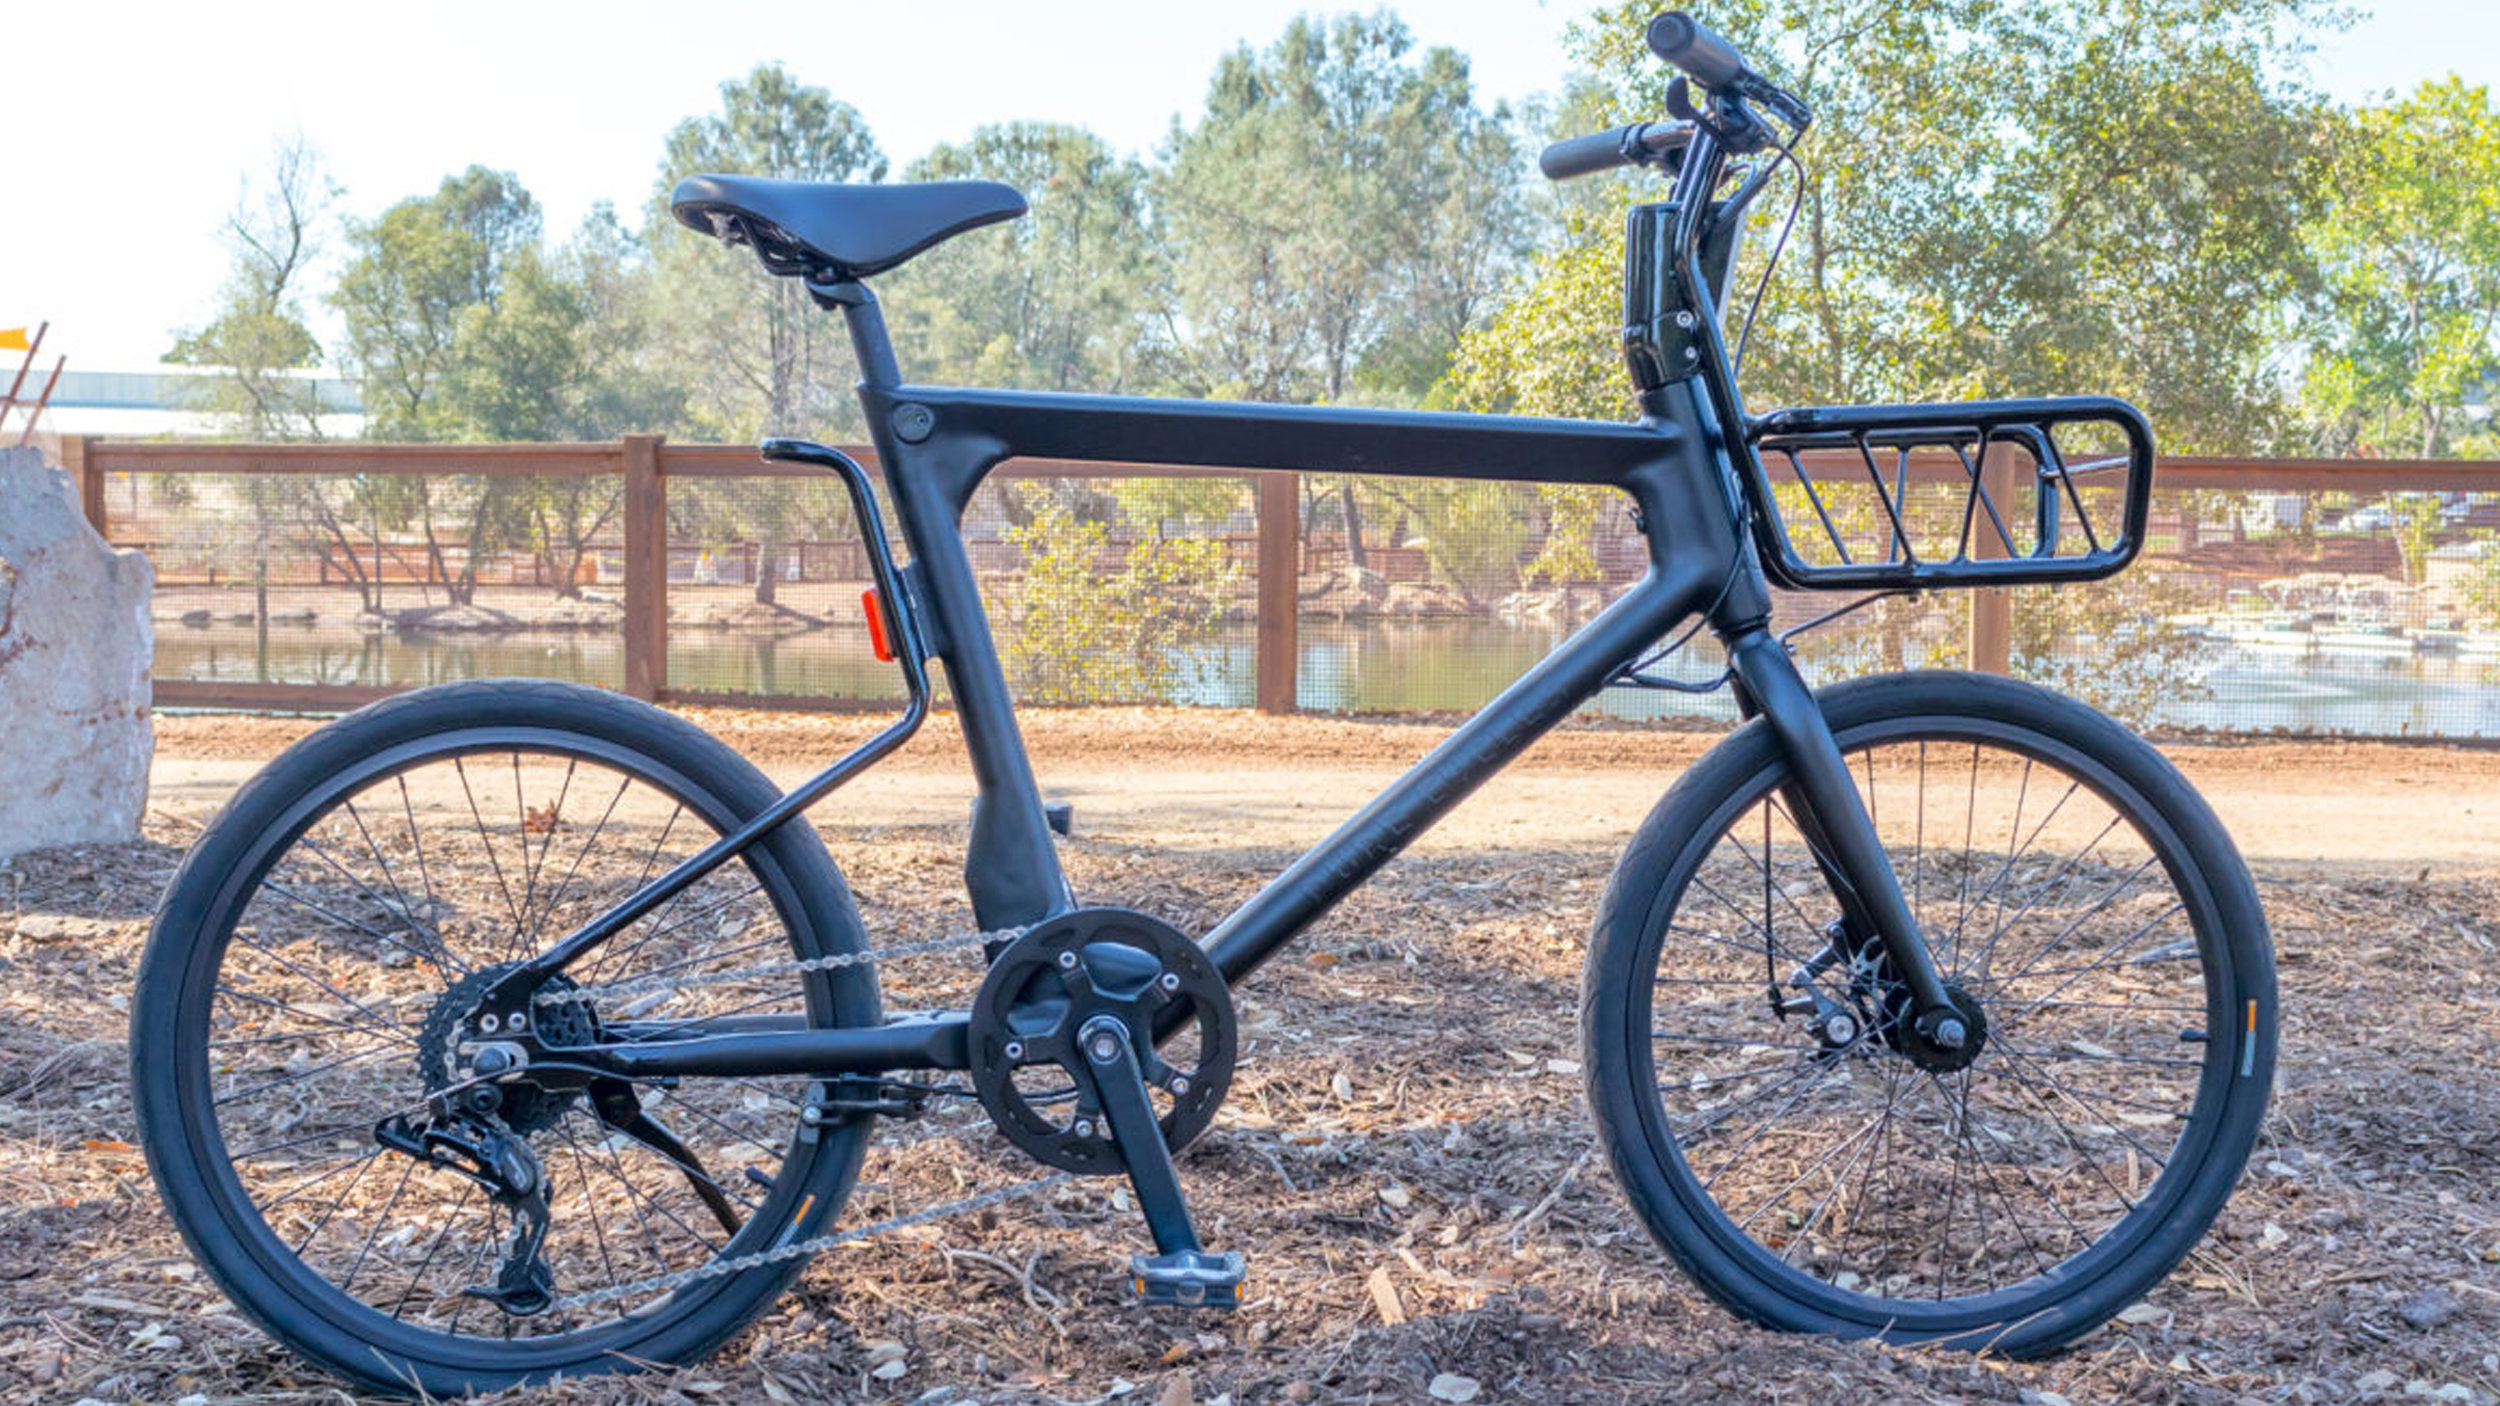 electrified-reviews-pure-cycles-volta-single-speed-electric-bike-review-profile.jpg